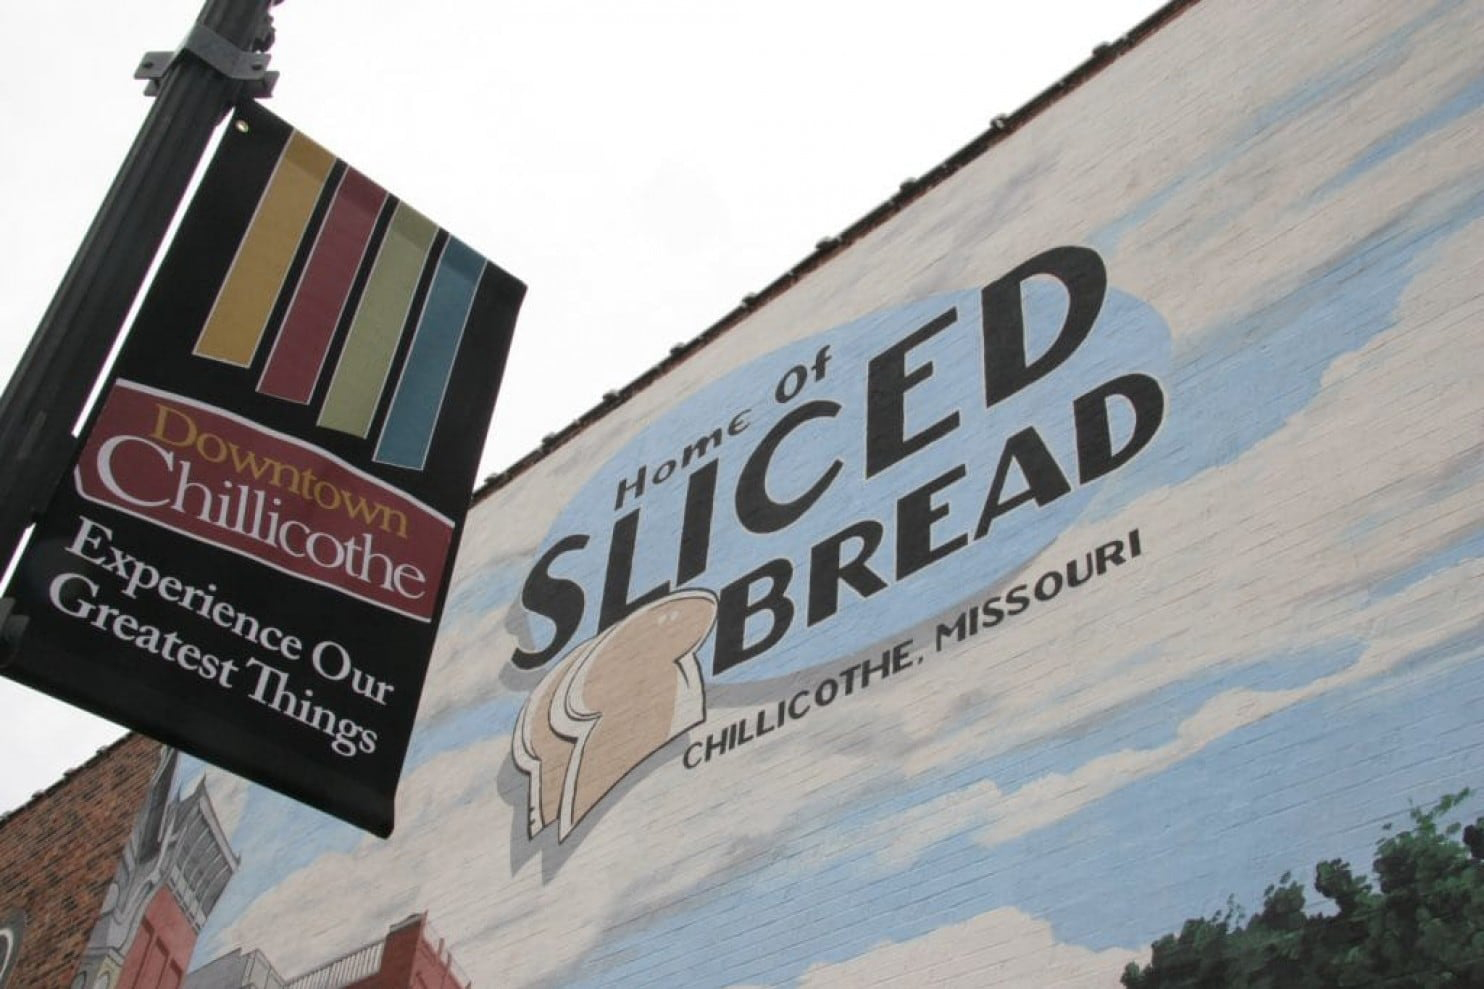 Downtown Chillicothe, Mo., where a mural celebrates the town's slogan,